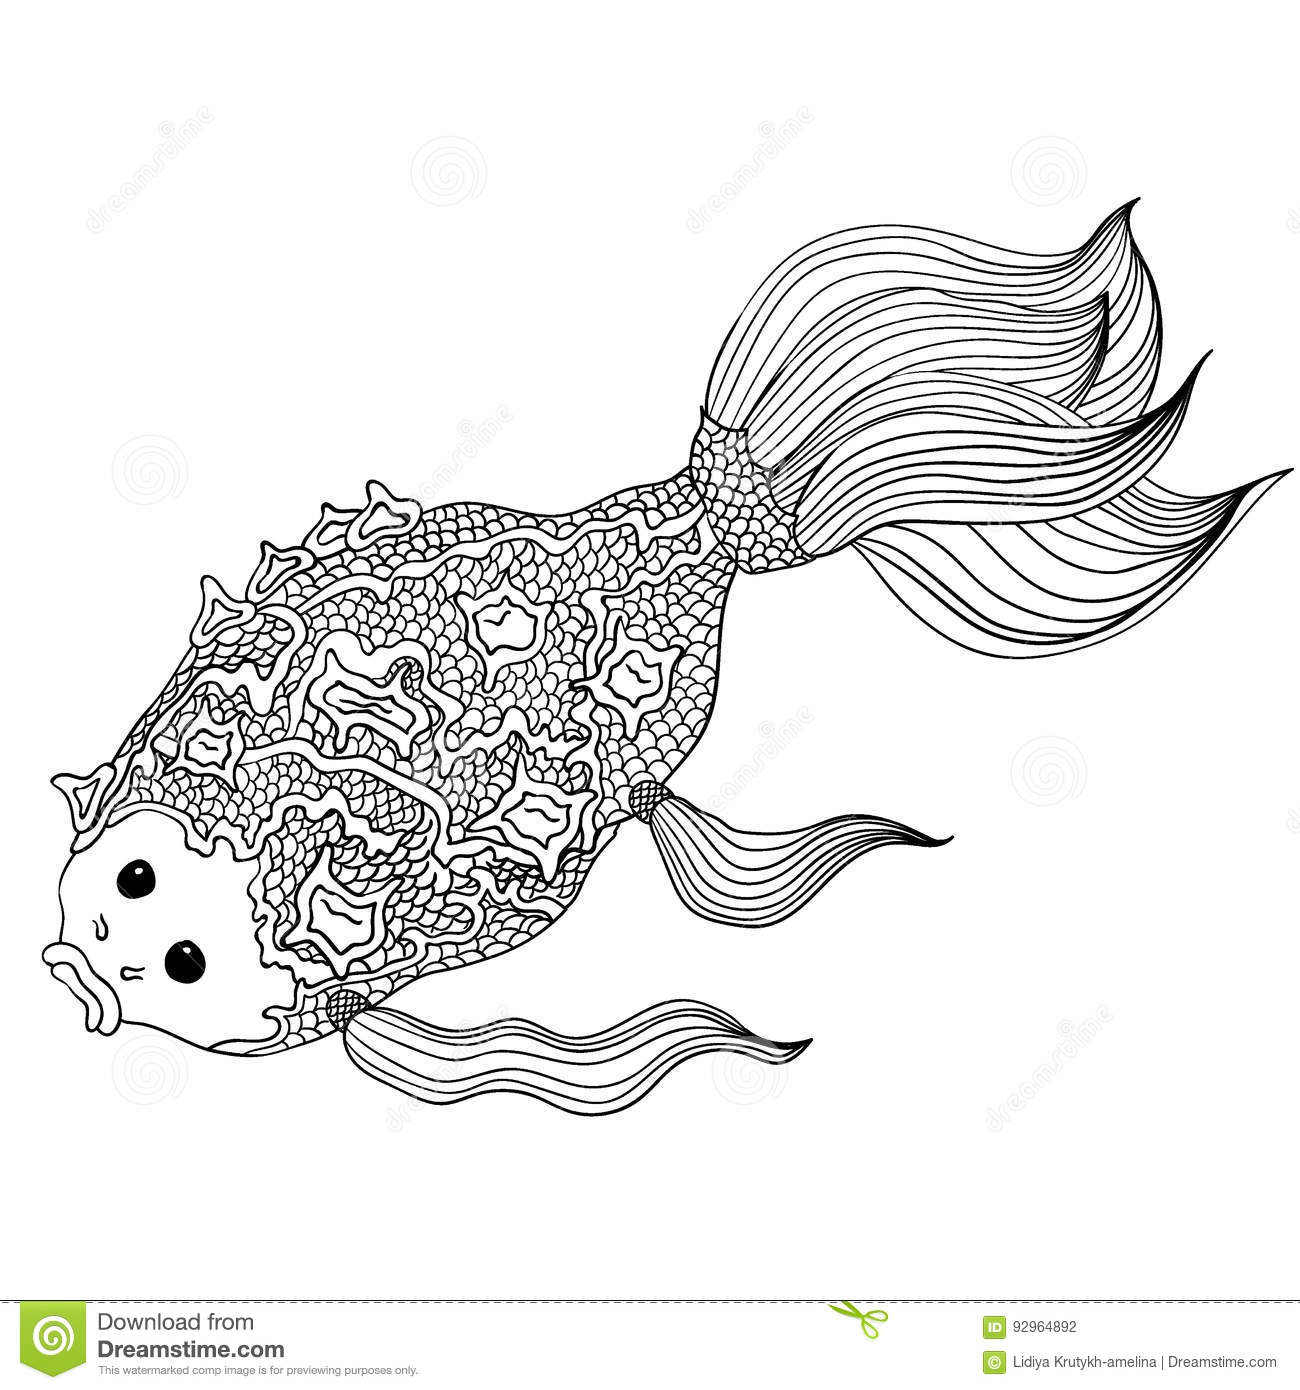 Hand drawn doodle fish lines editable